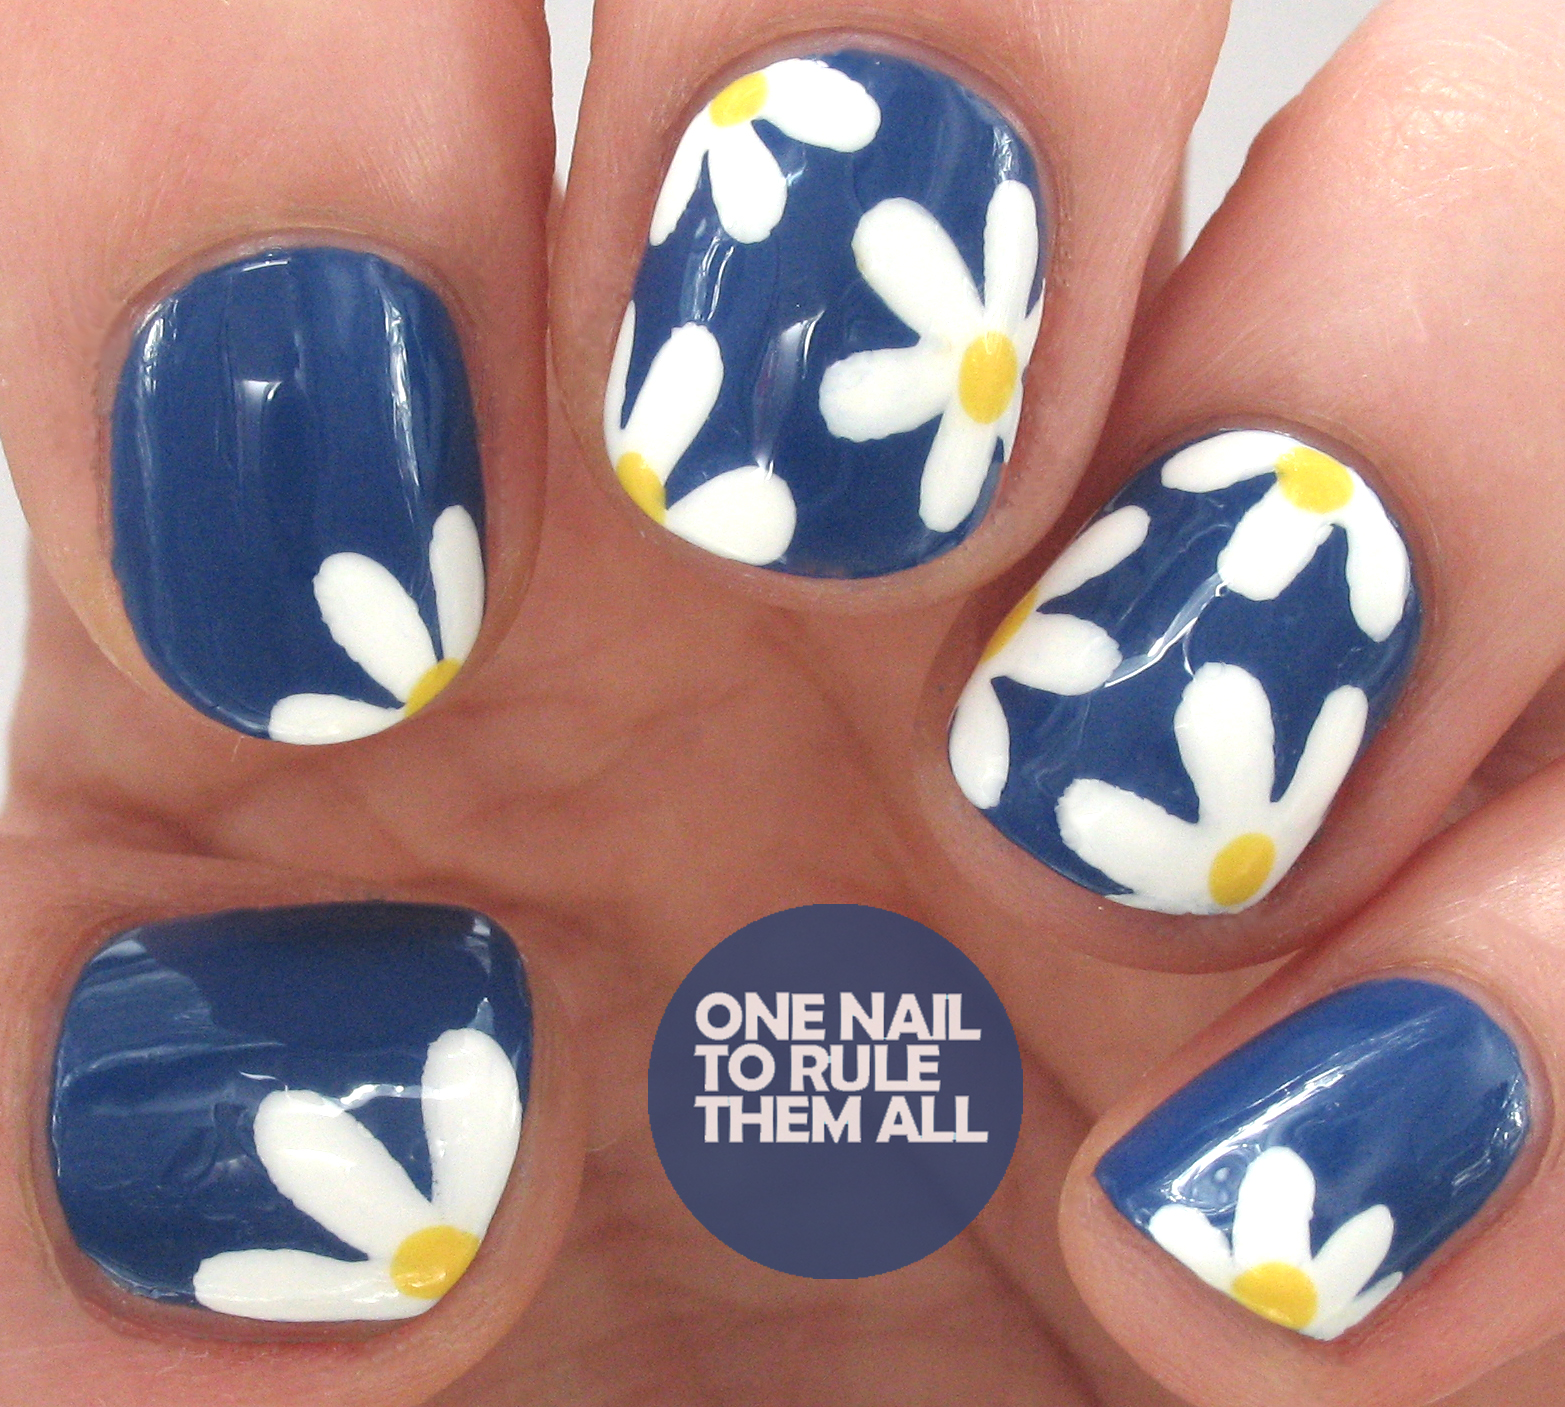 One Nail To Rule Them All: Navy Daisies for Avon